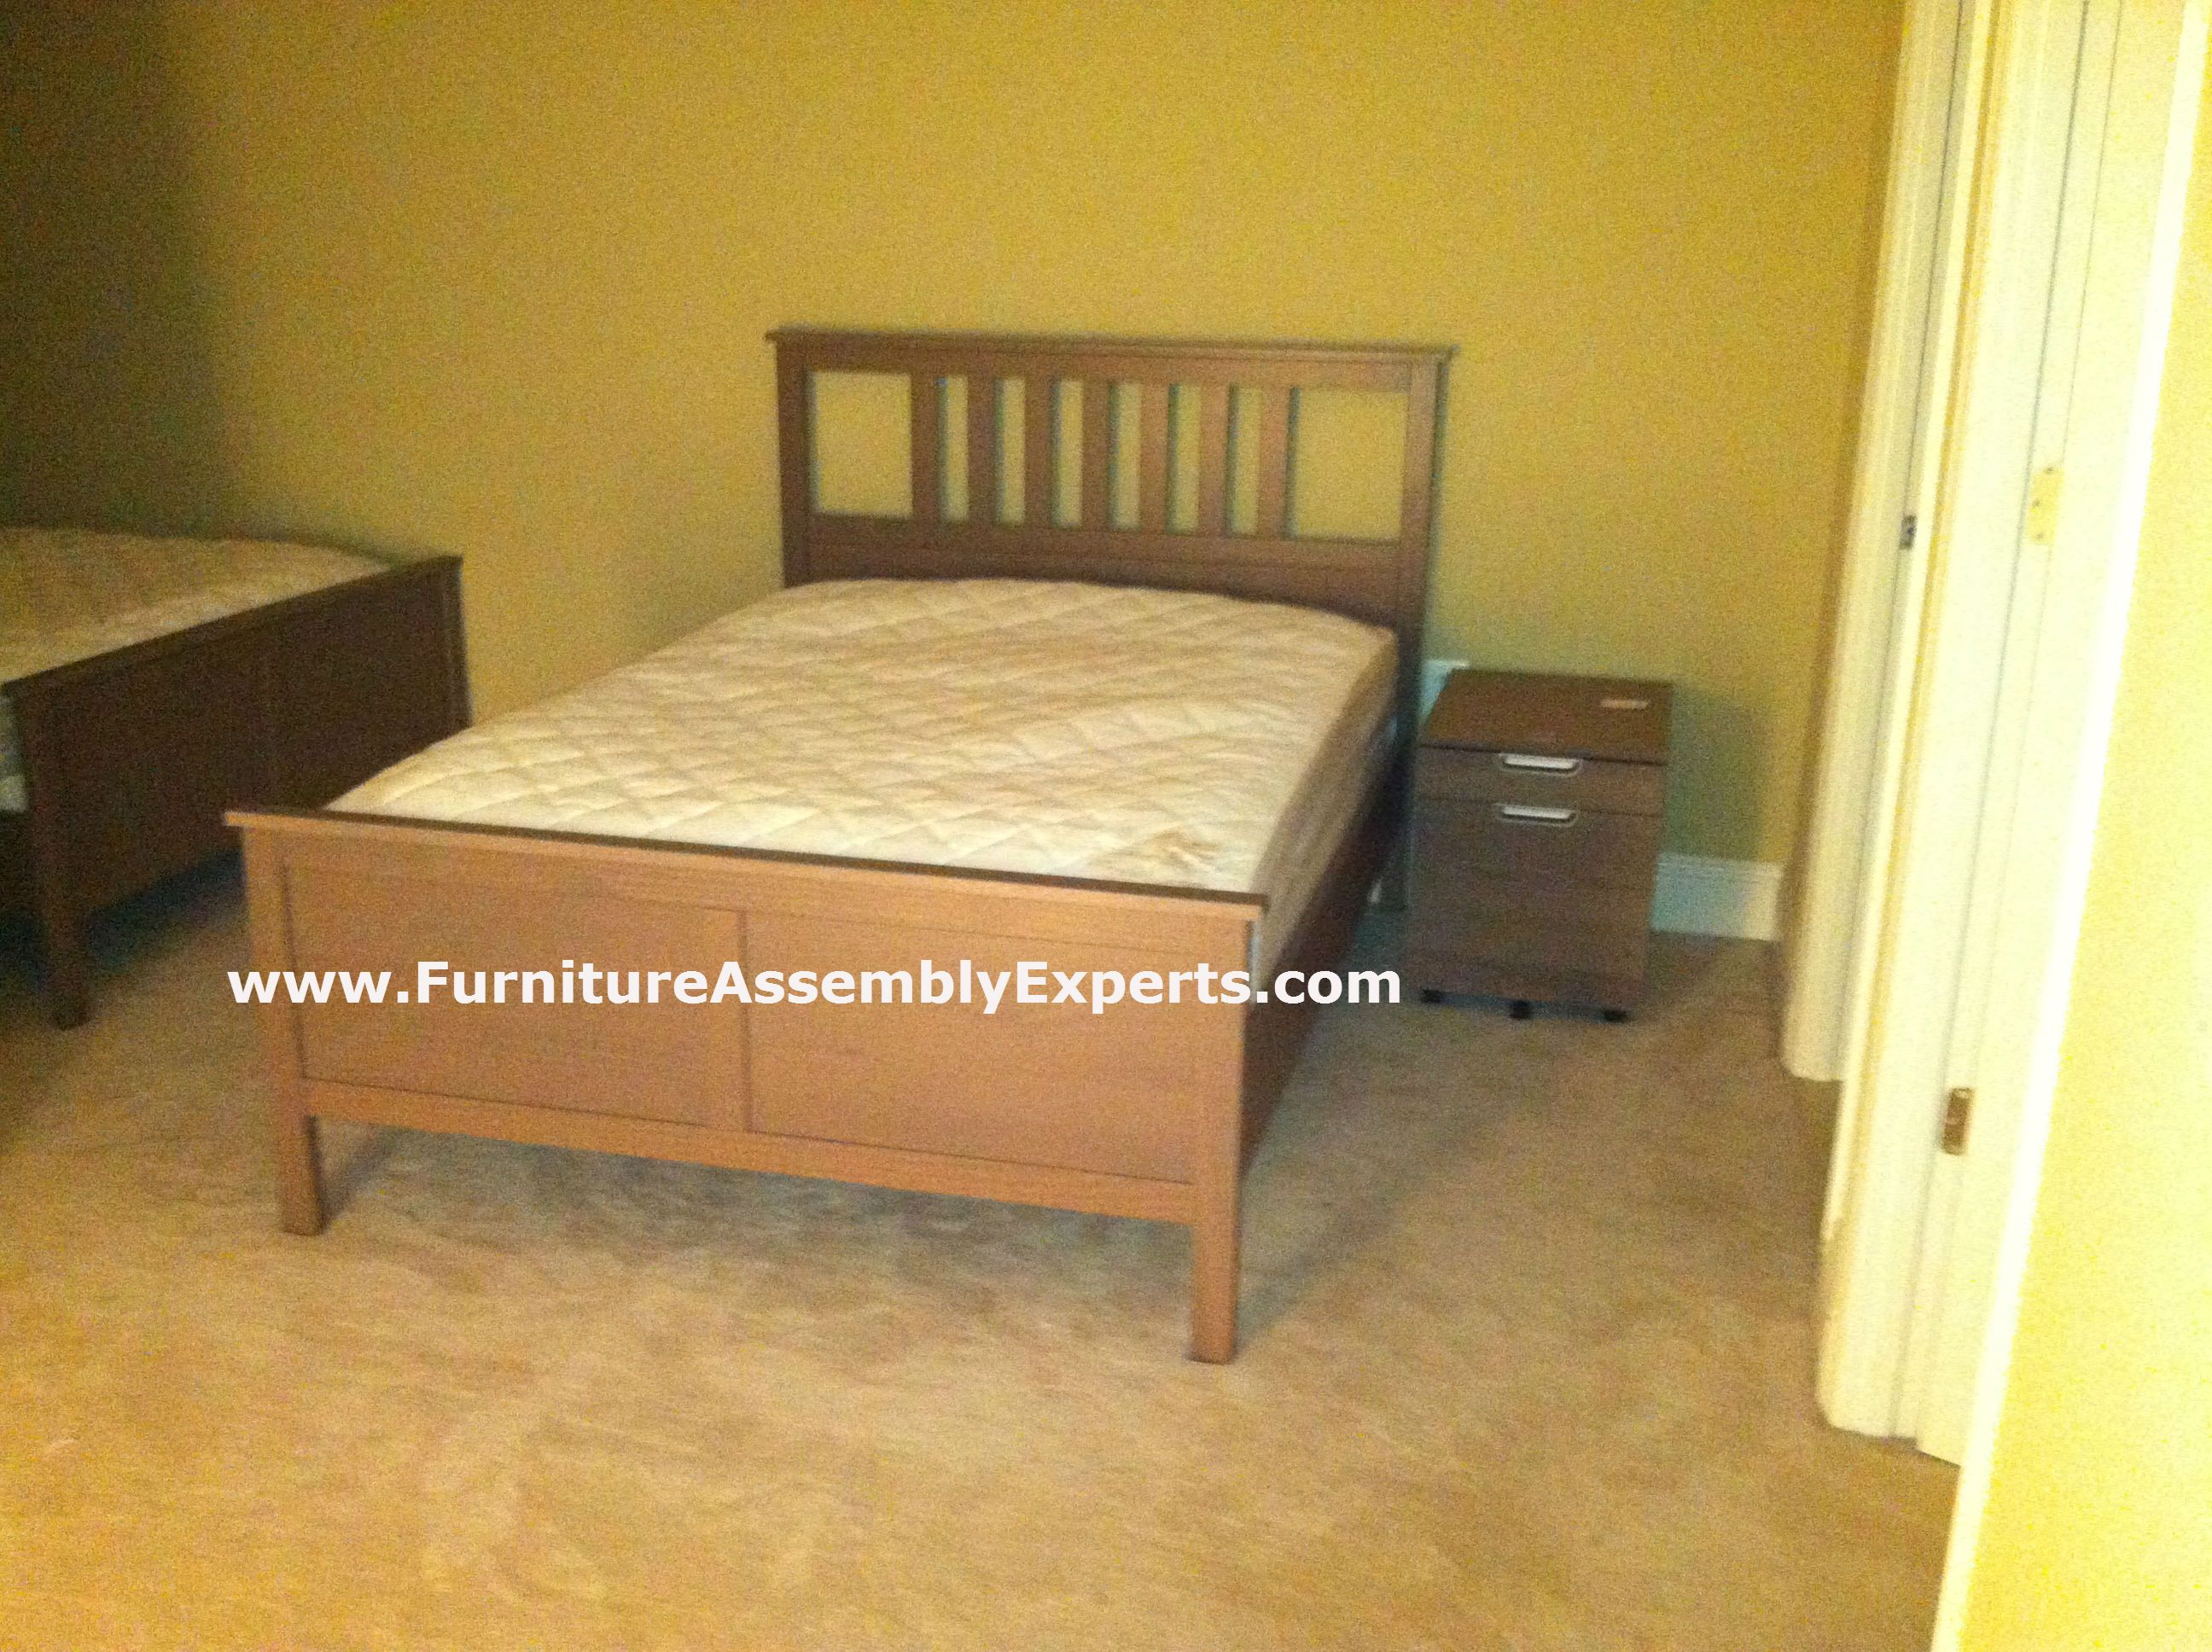 Ikea Hemnes Bed Assembled In Dundalk Md By Furniture Assembly